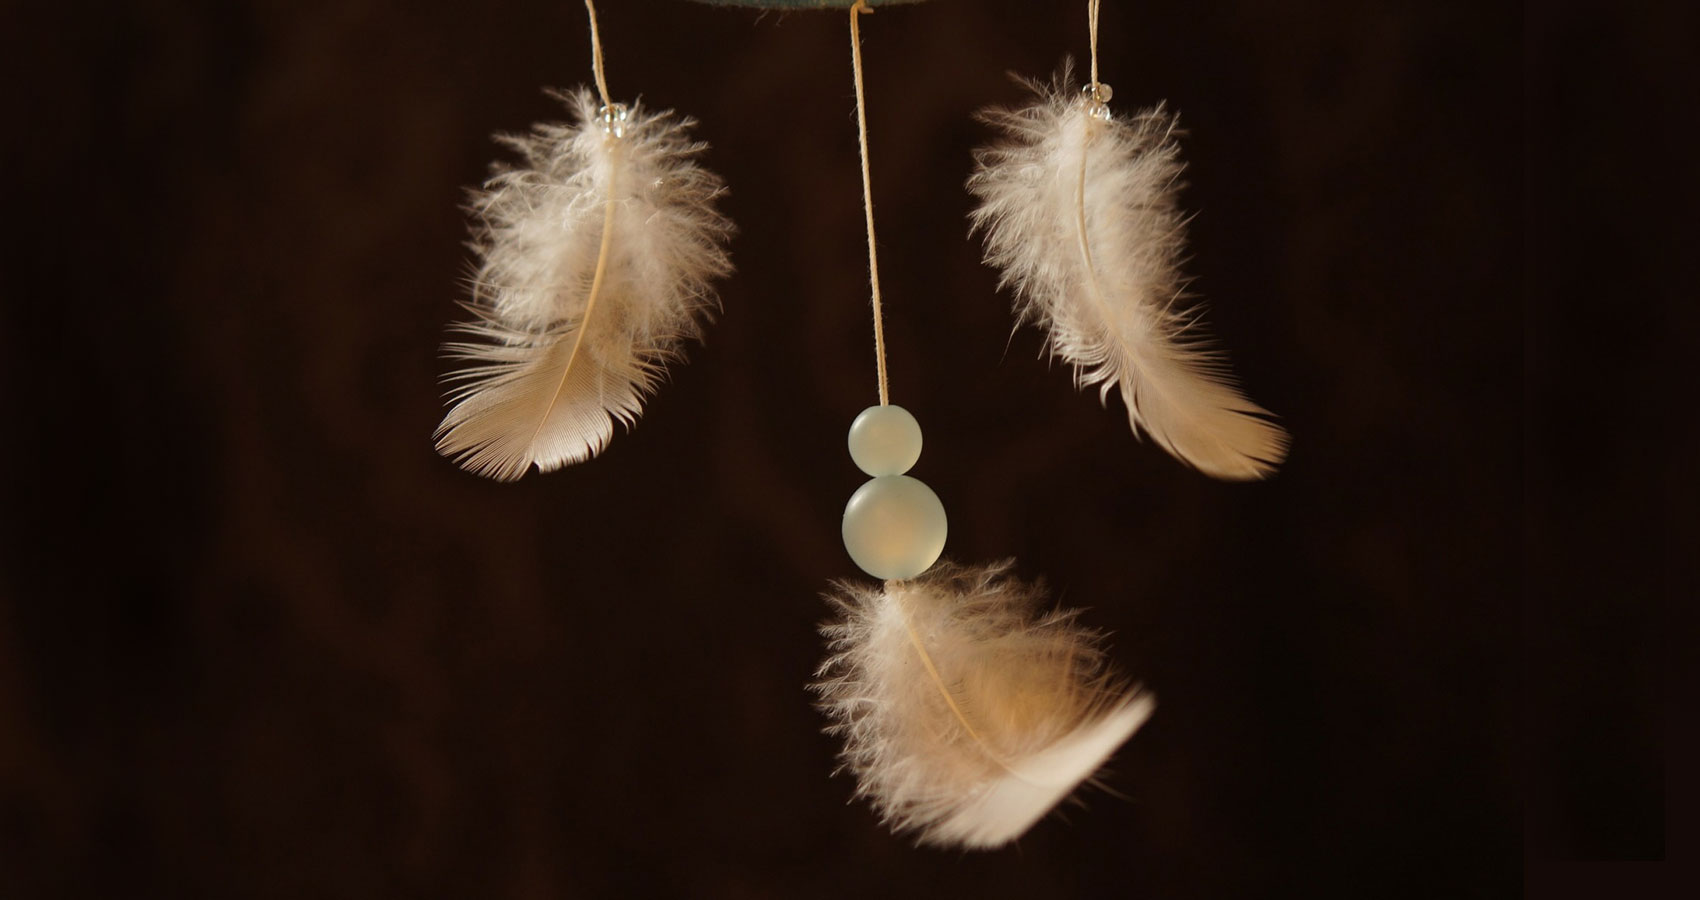 The Dream Catcher written by Sona Wilae at Spillwords.com